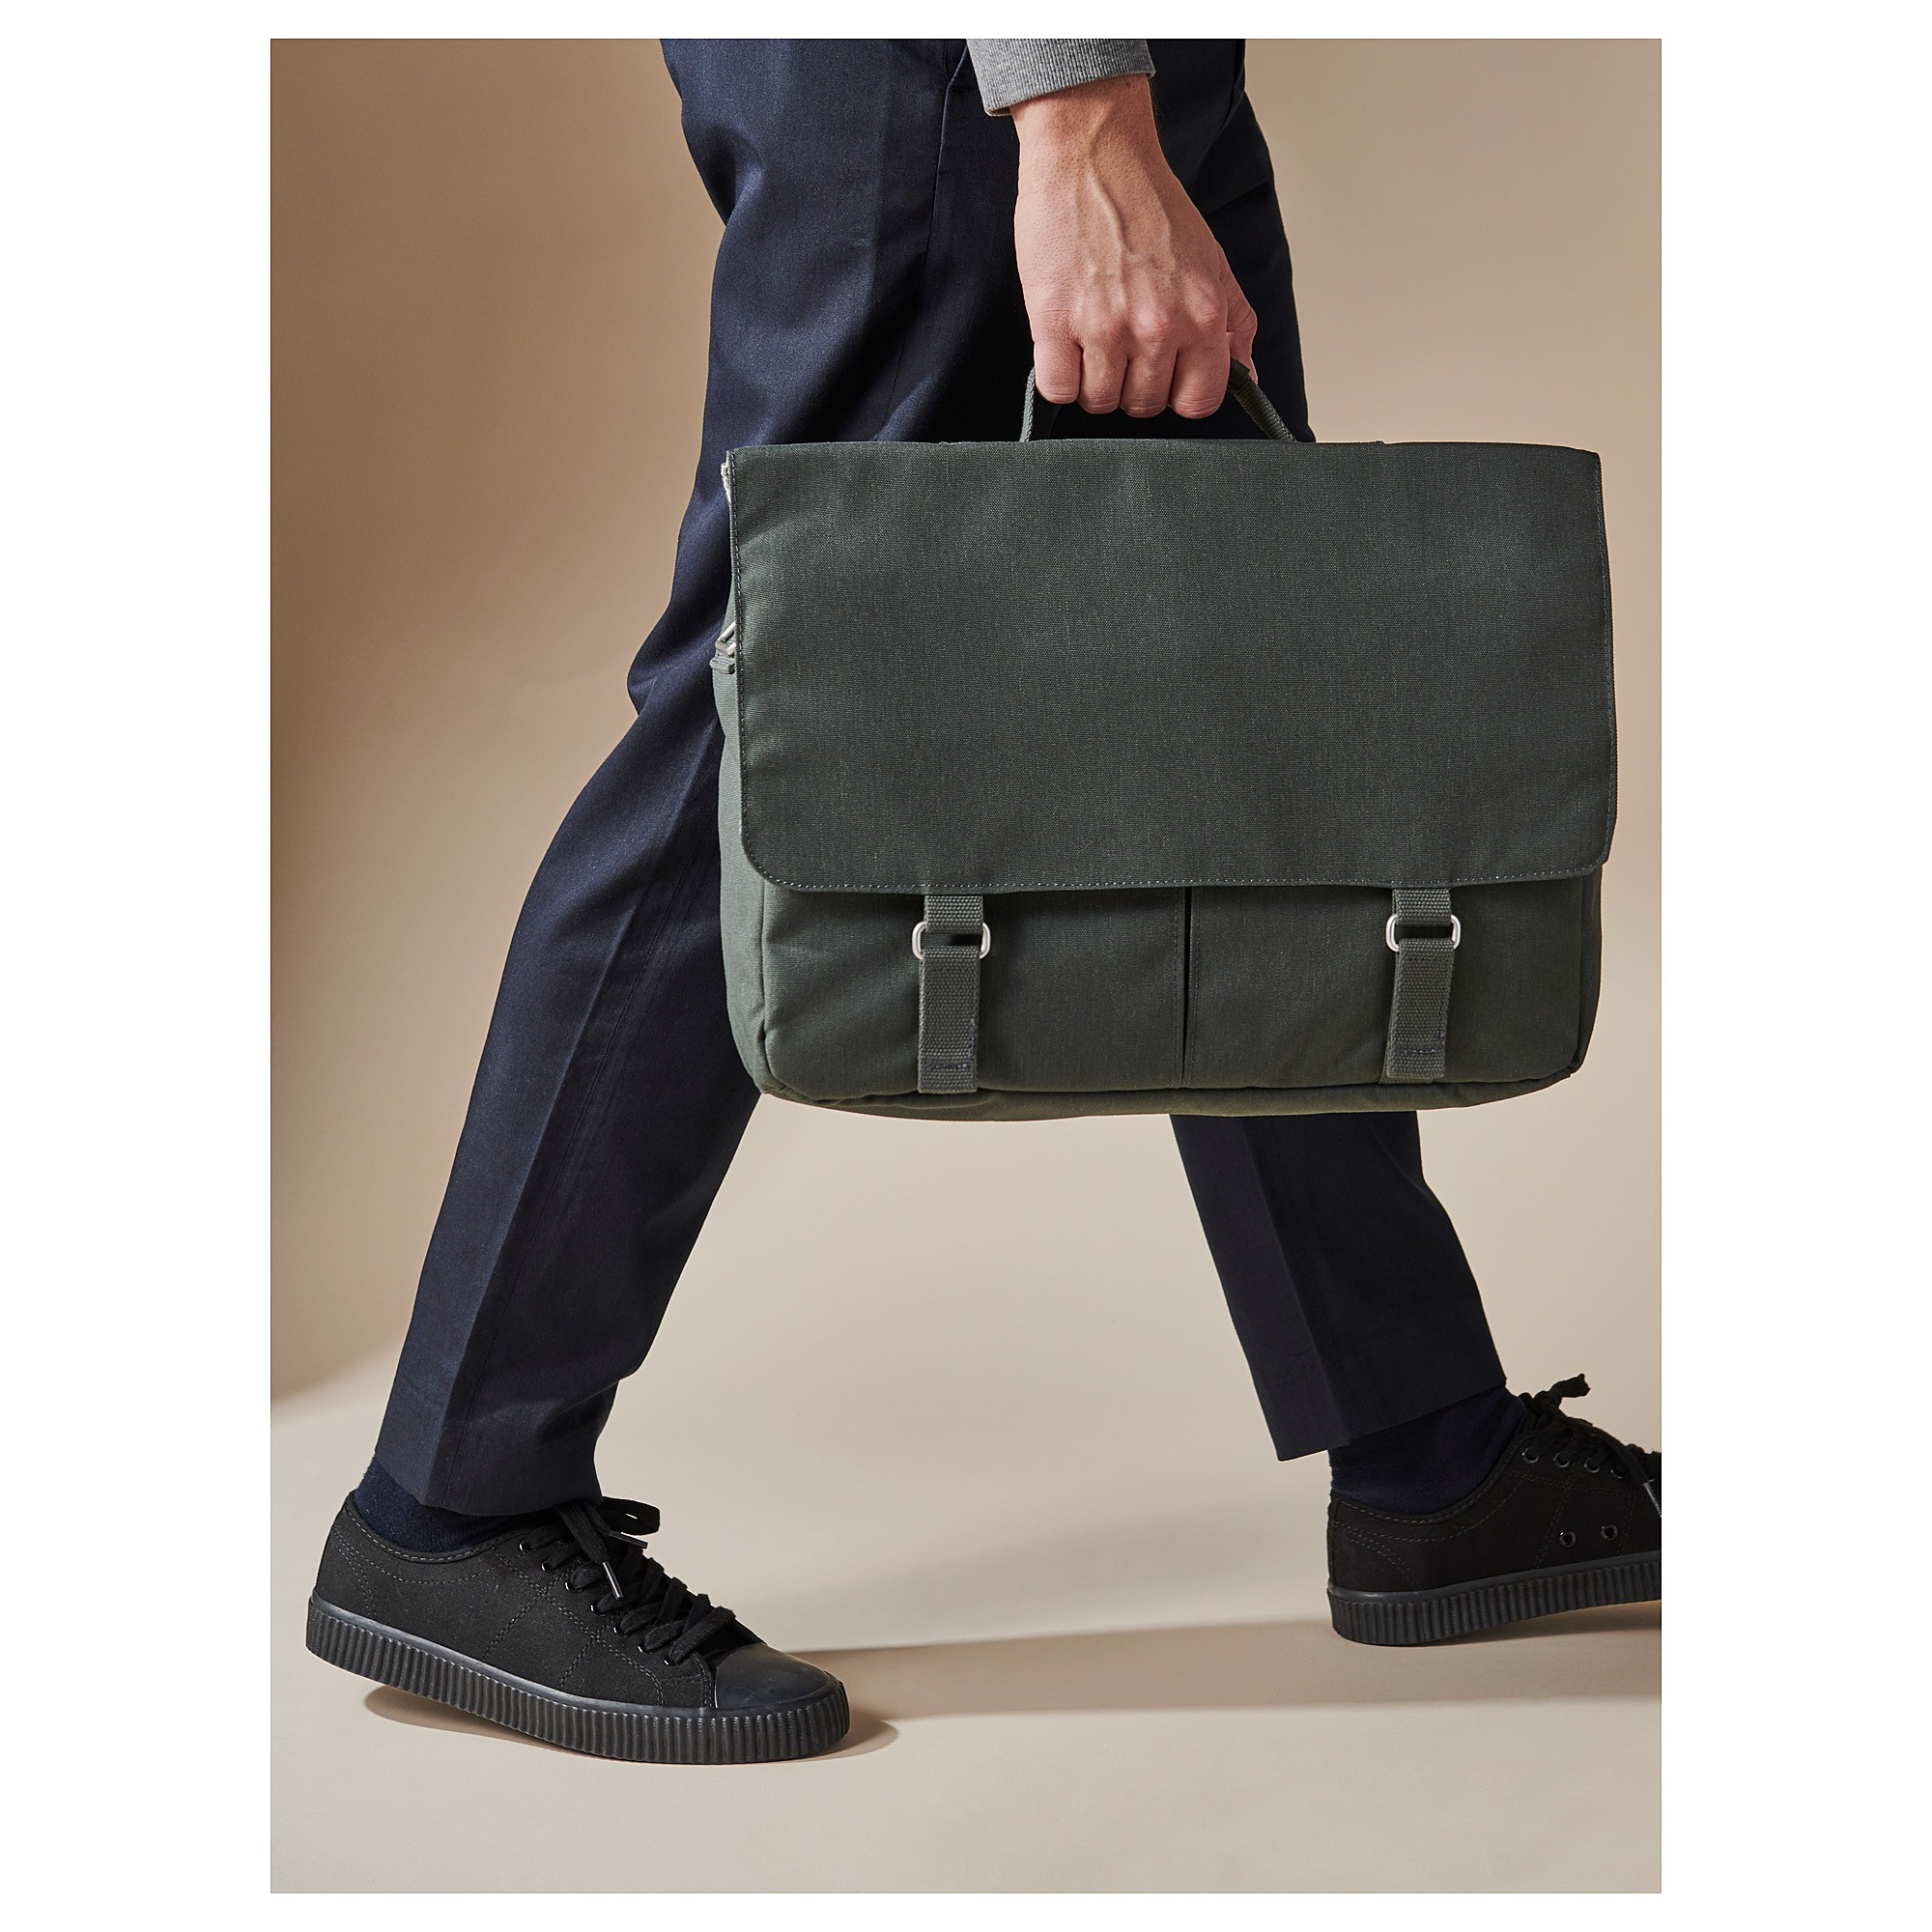 IKEA DRÖMSÄCK Messenger Bag - Olive Green